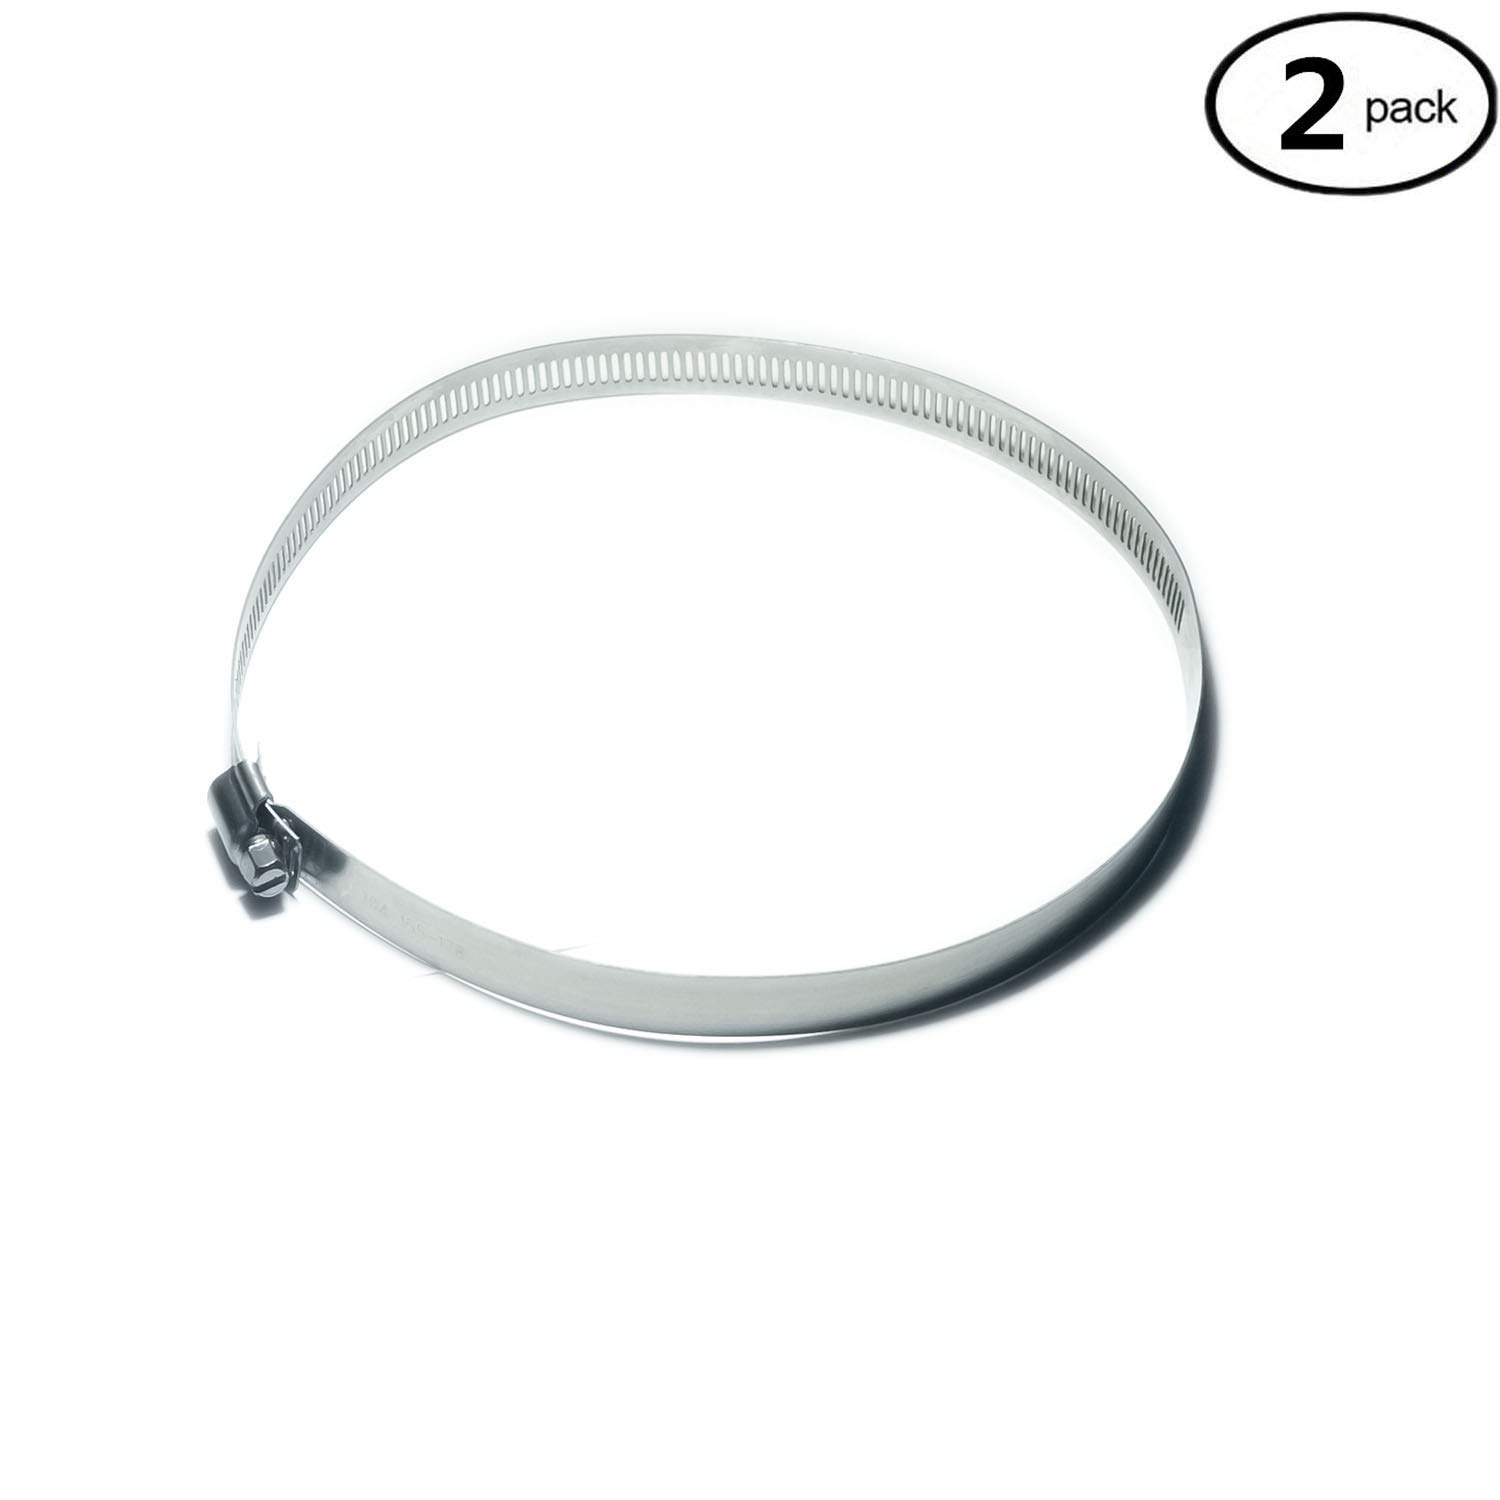 12 Inch Adjustable Stainless Steel Worm Gear Hose Clamps Water Pipe Clamps YongXuan